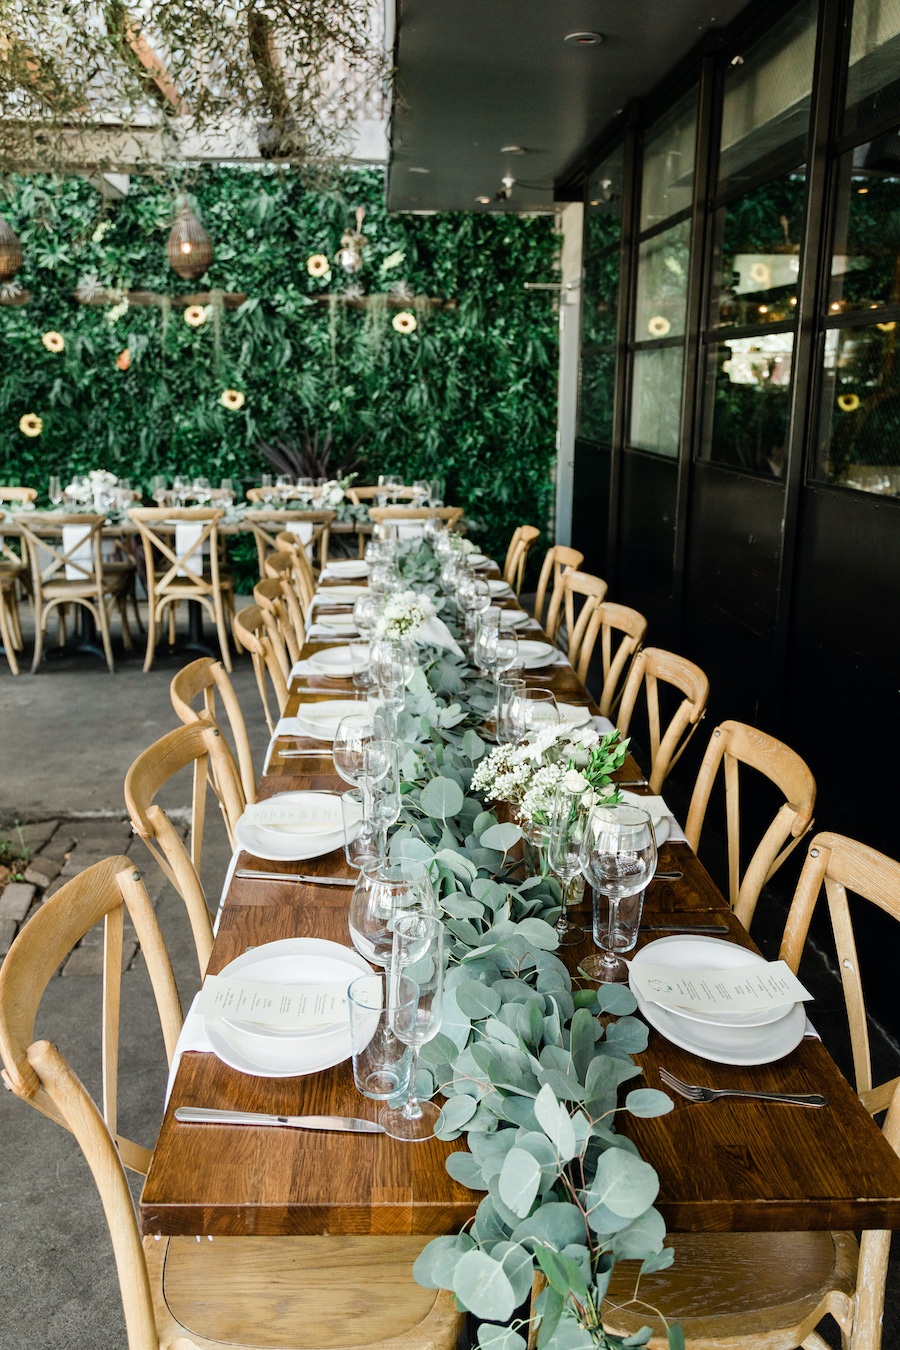 wedding tabletop decor at boho wedding venue